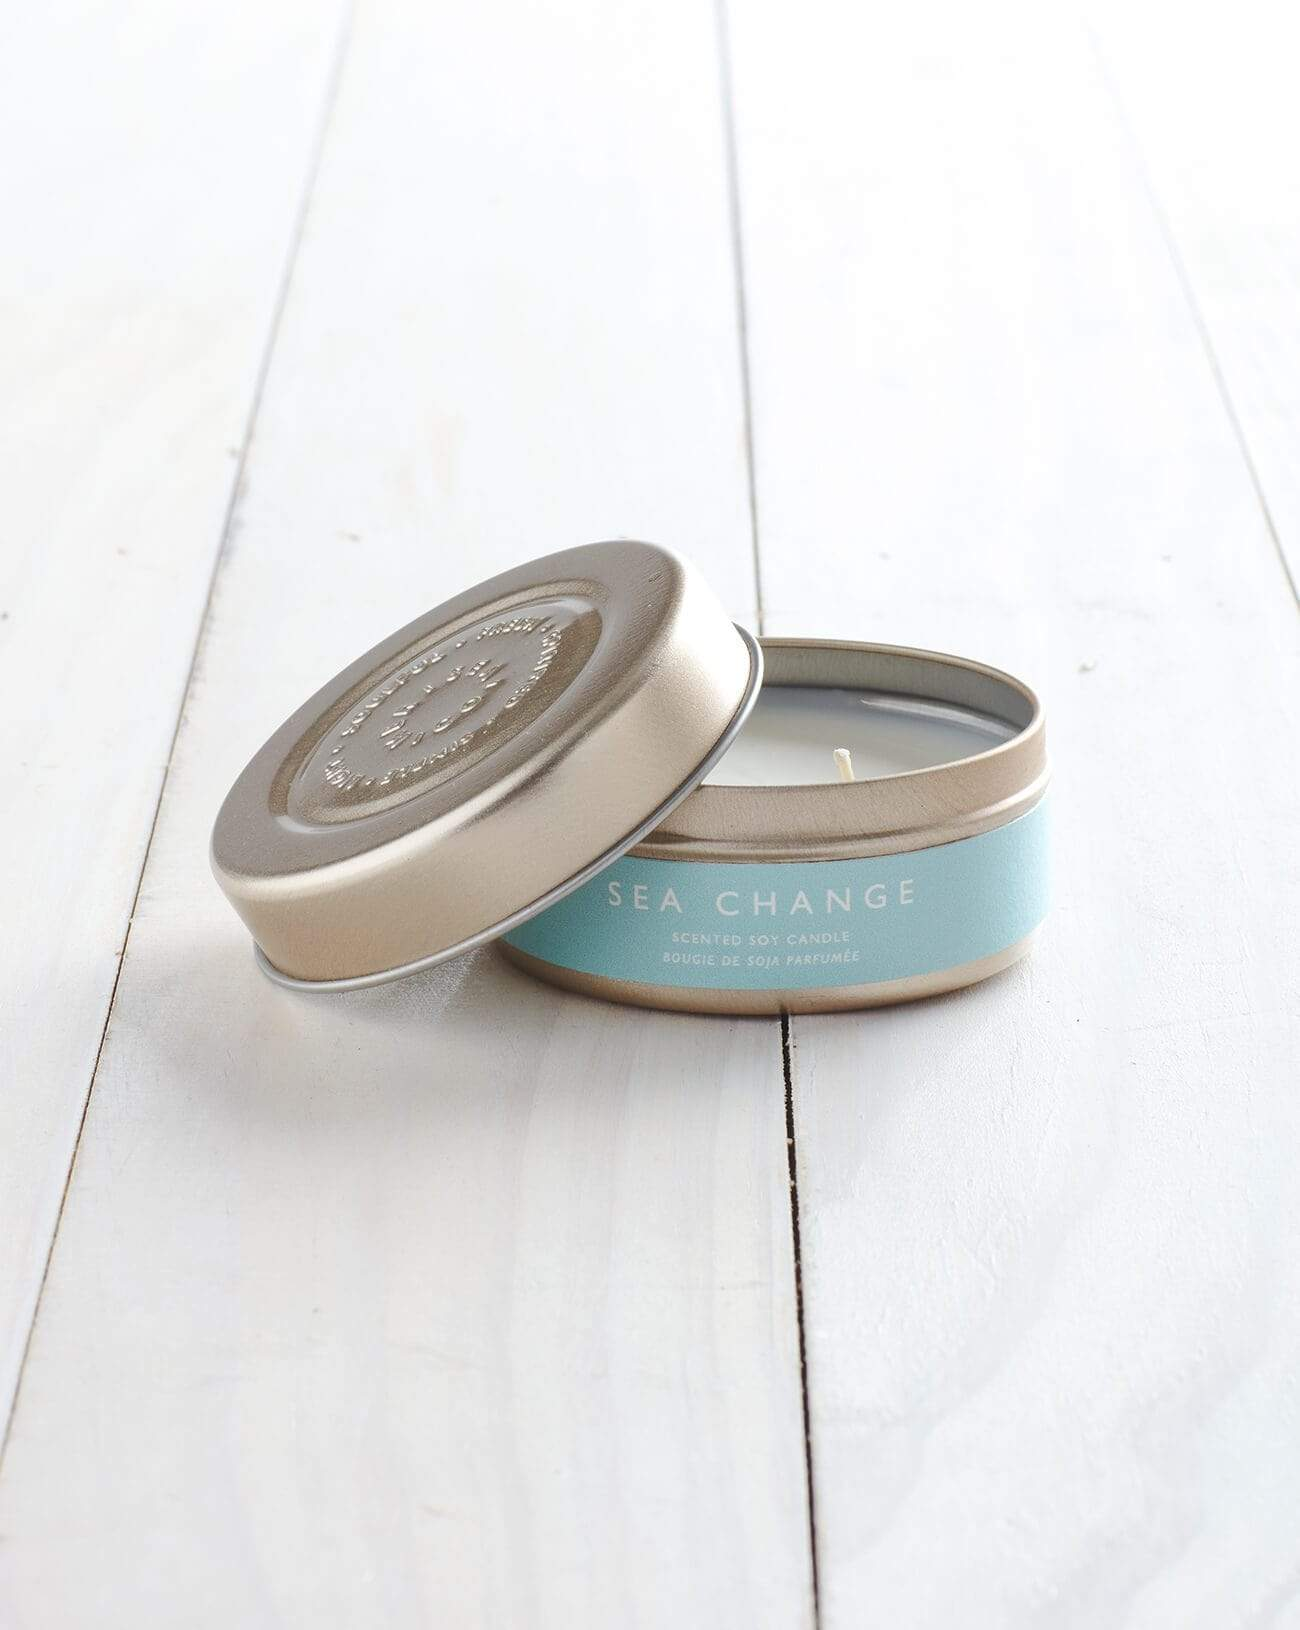 Sea Change Tin Candle